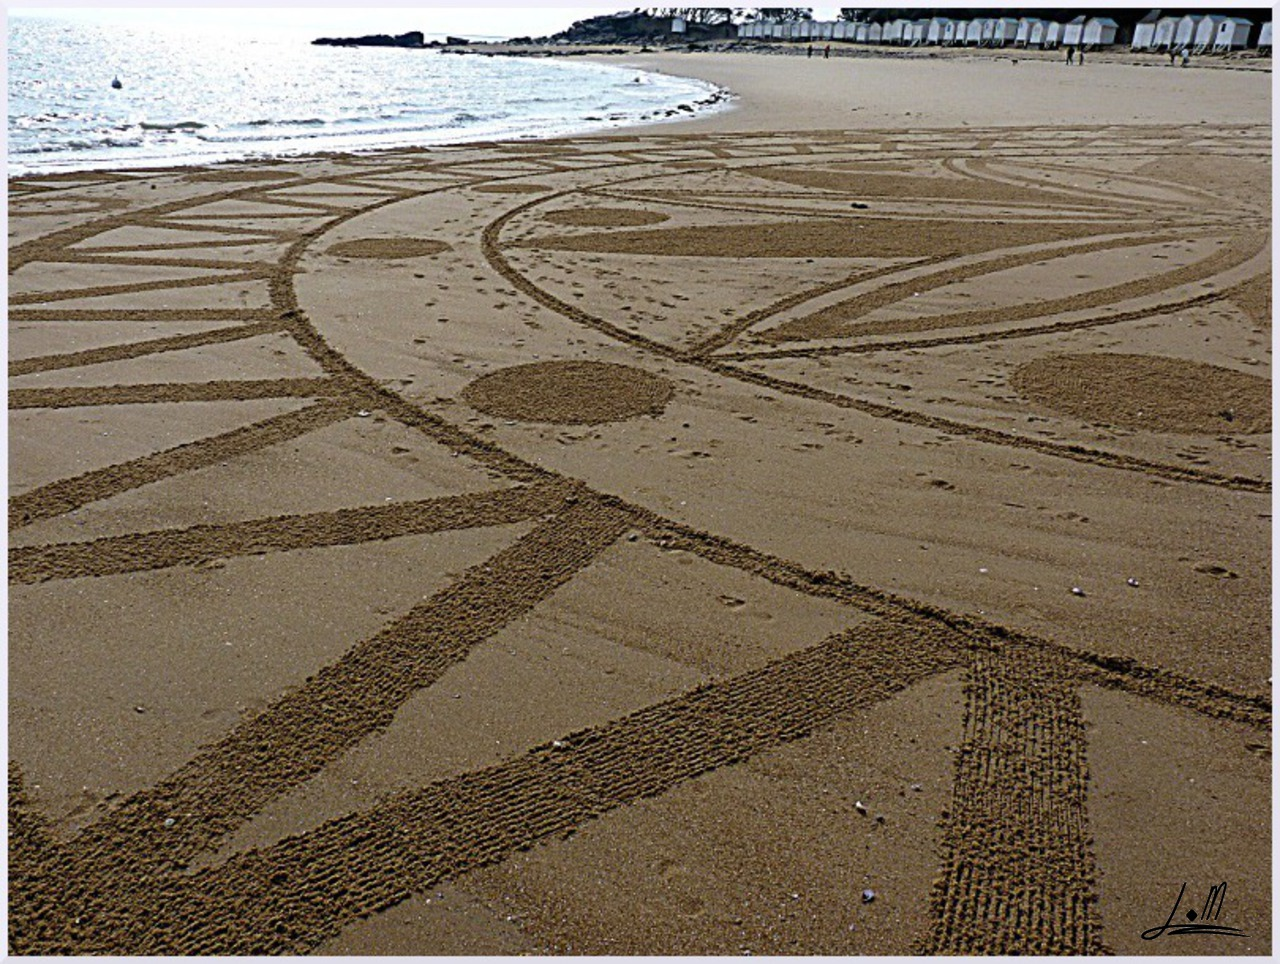 Fresque Beach art Plage des dames, Michel Jobard